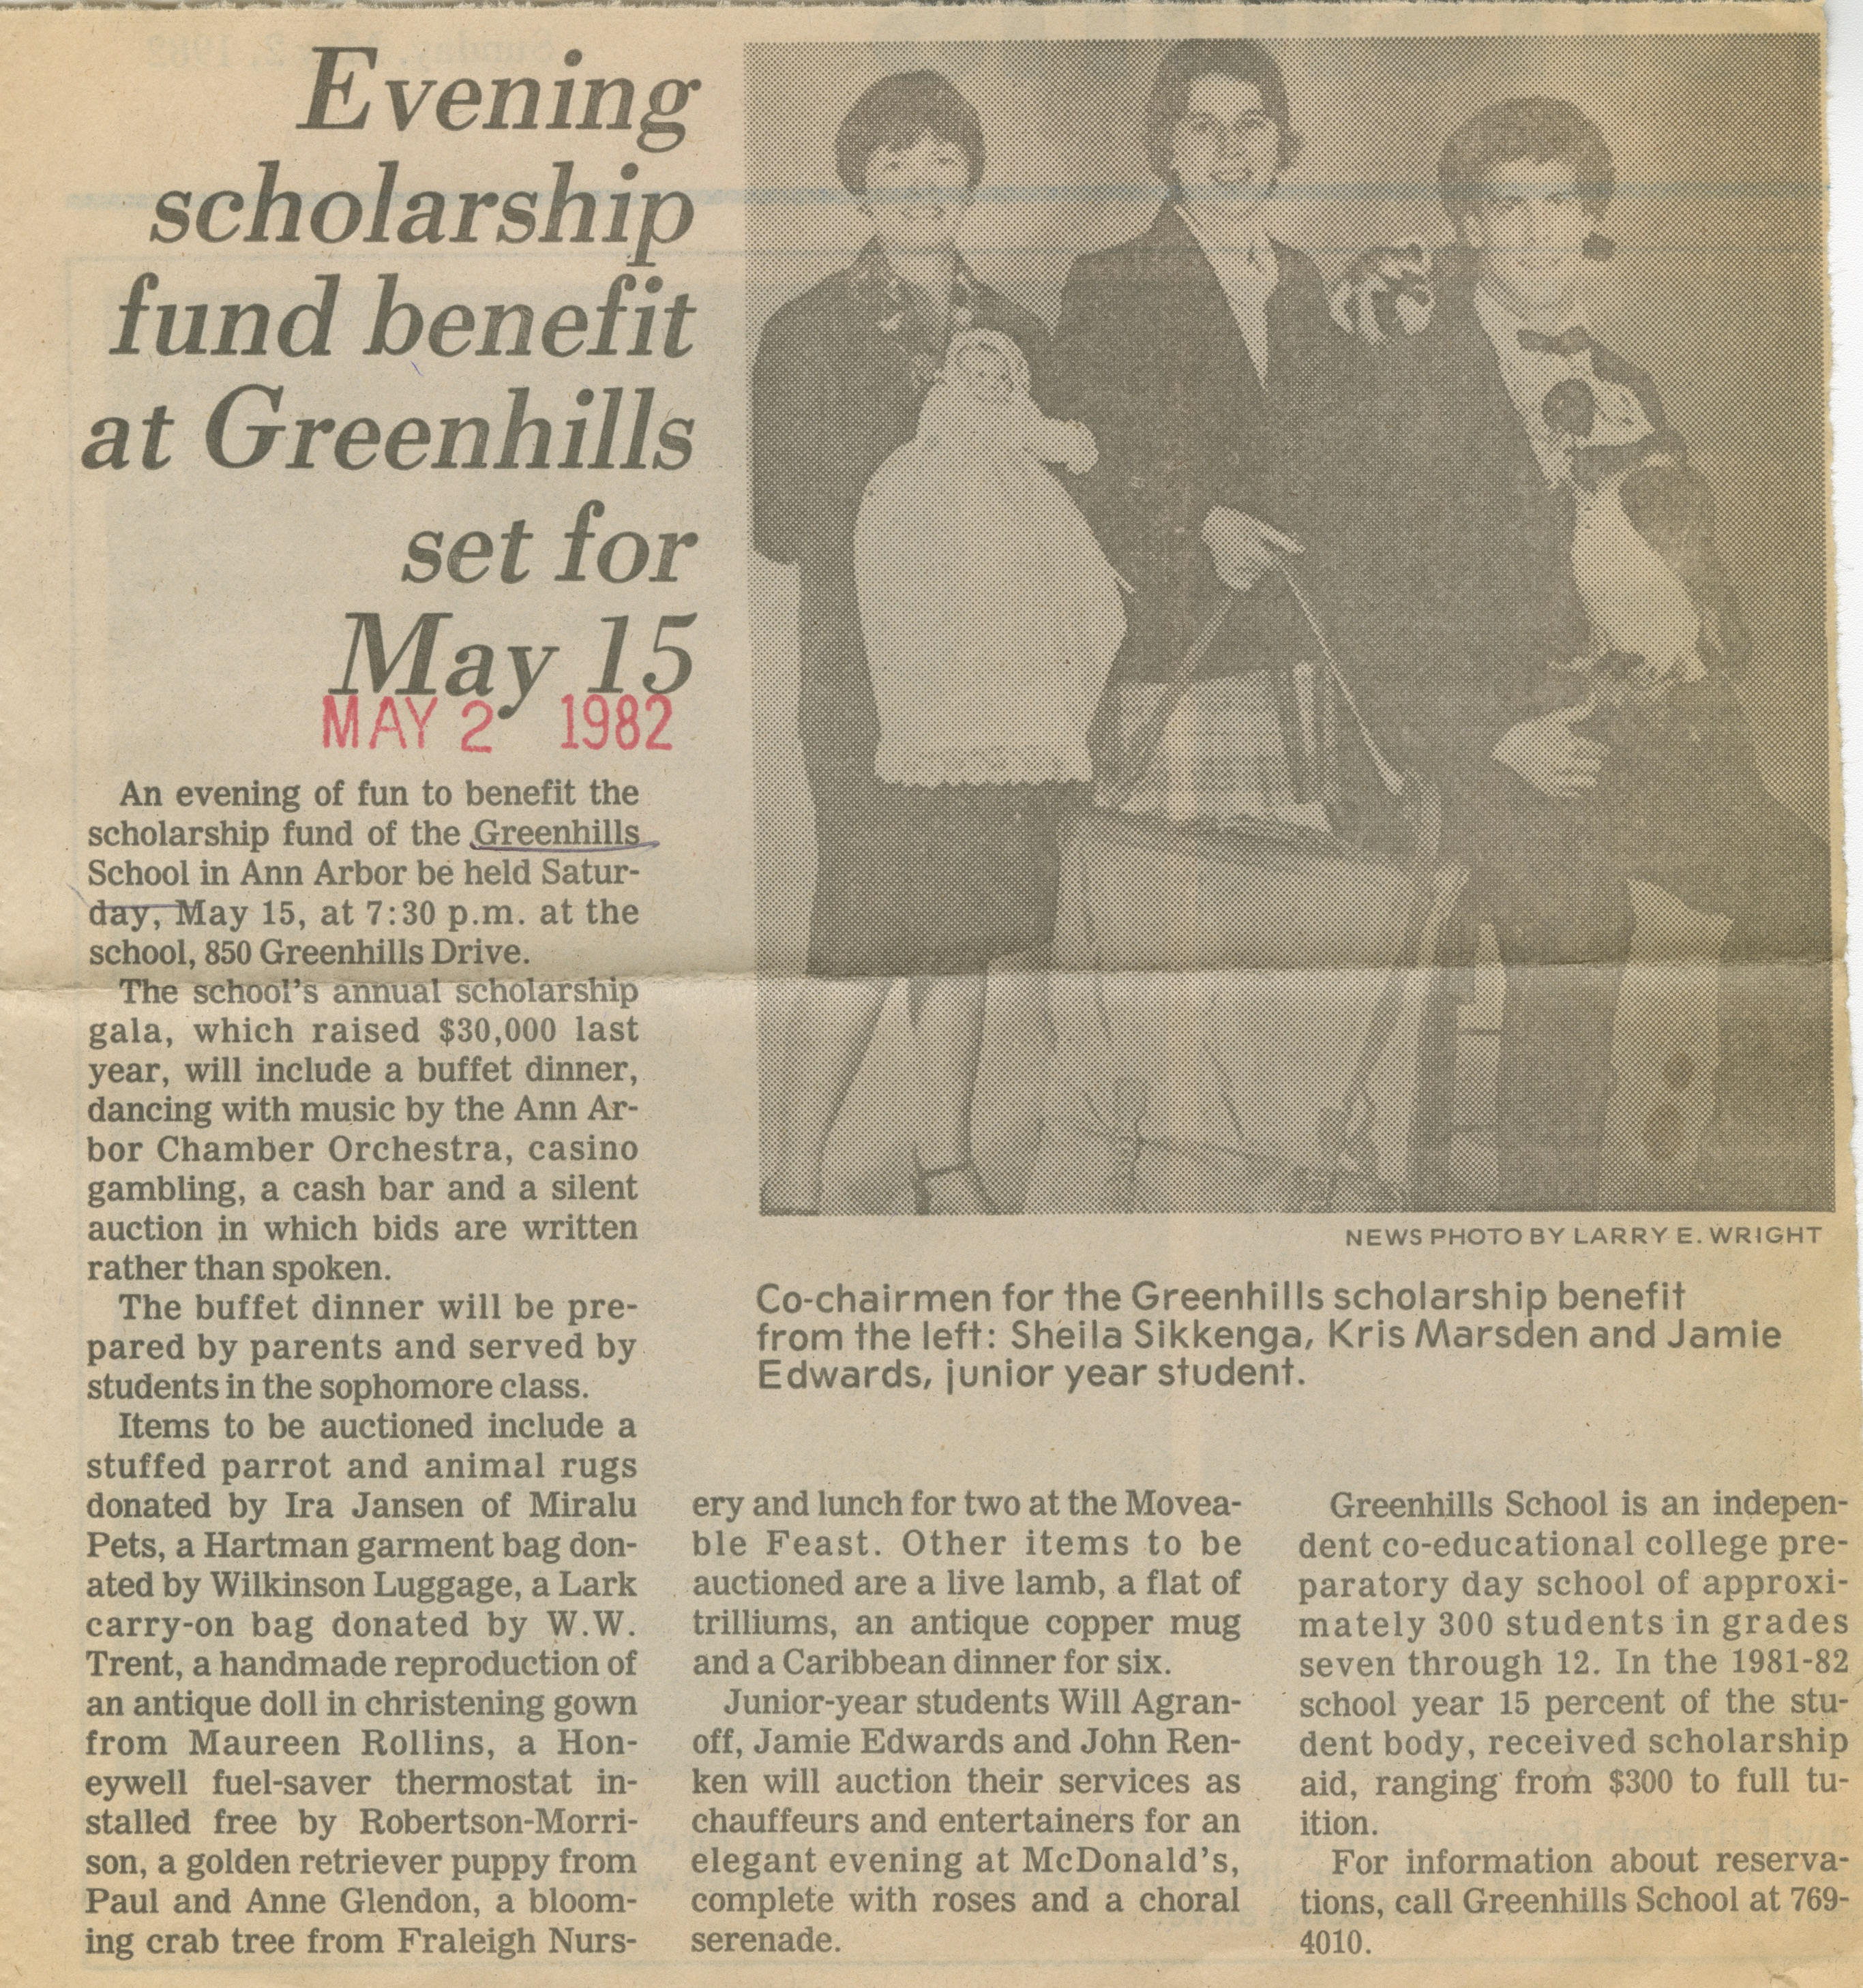 Evening Scholarship Fund Benefit At Greenhills Set For May 15 image